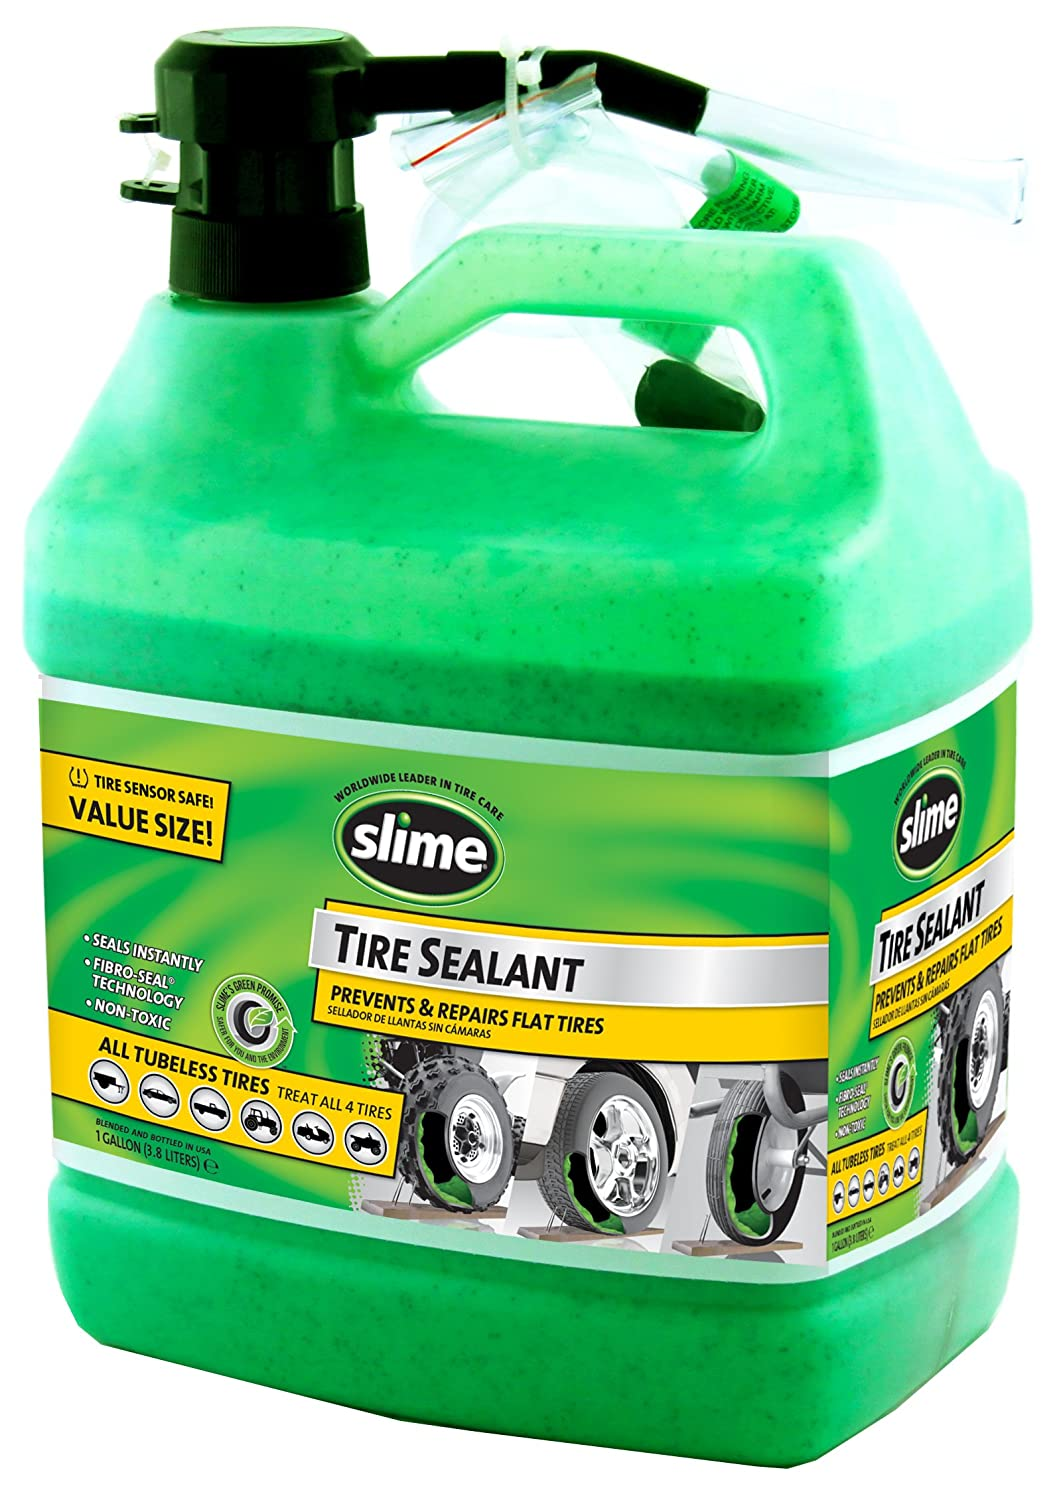 slime tire sealant